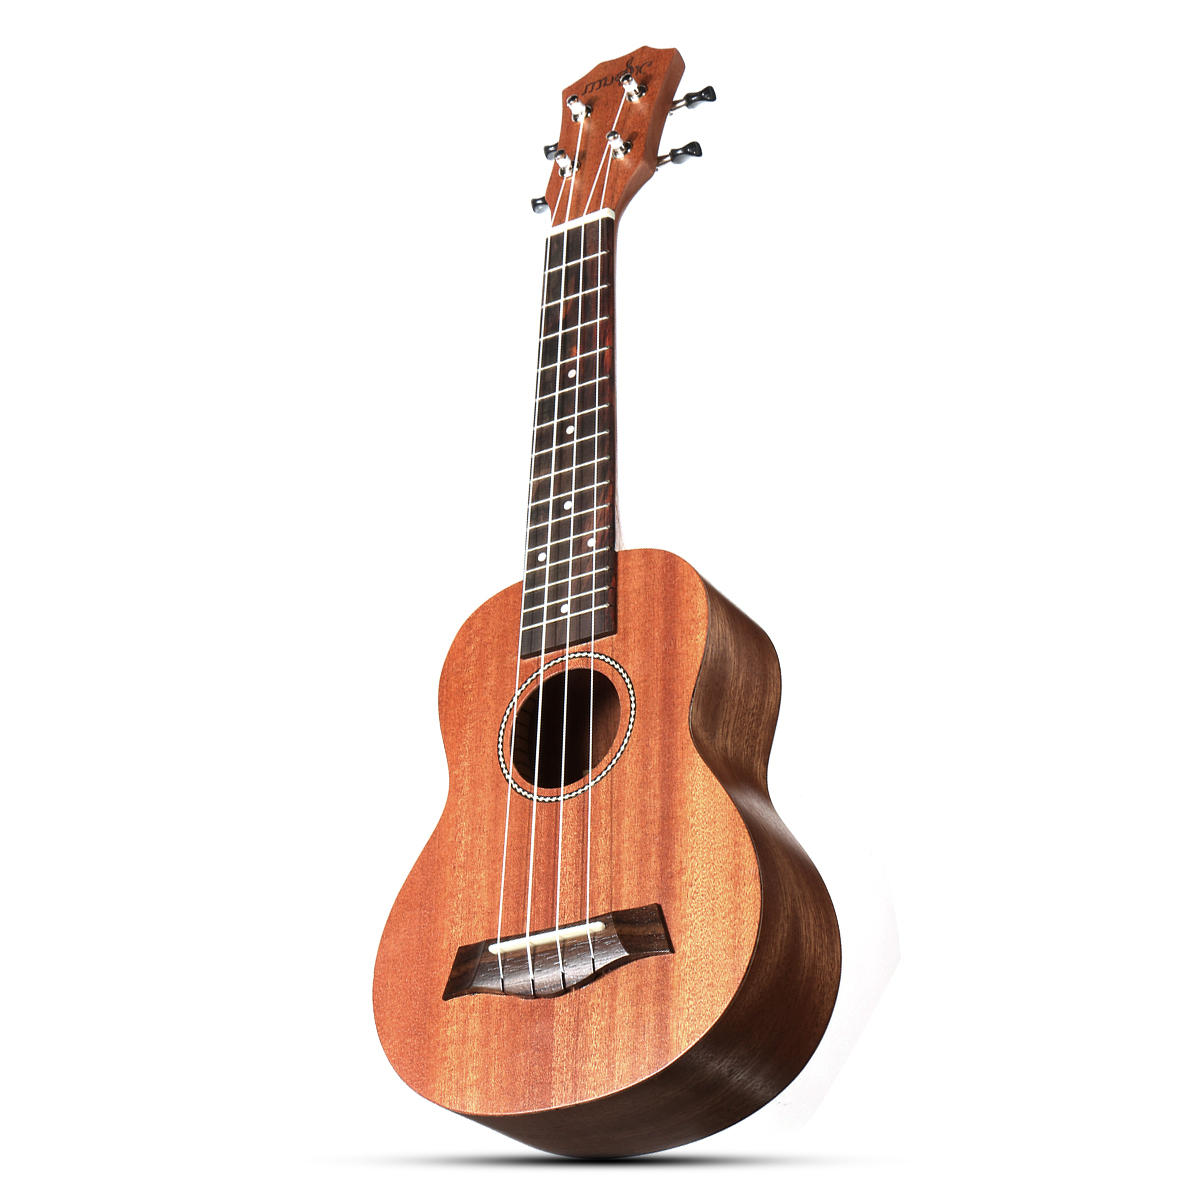 21 Inch 4 Strings 15 Frets Wood Color Mahogany Ukulele Musical Instrument With Guitar picks/Rope - 4